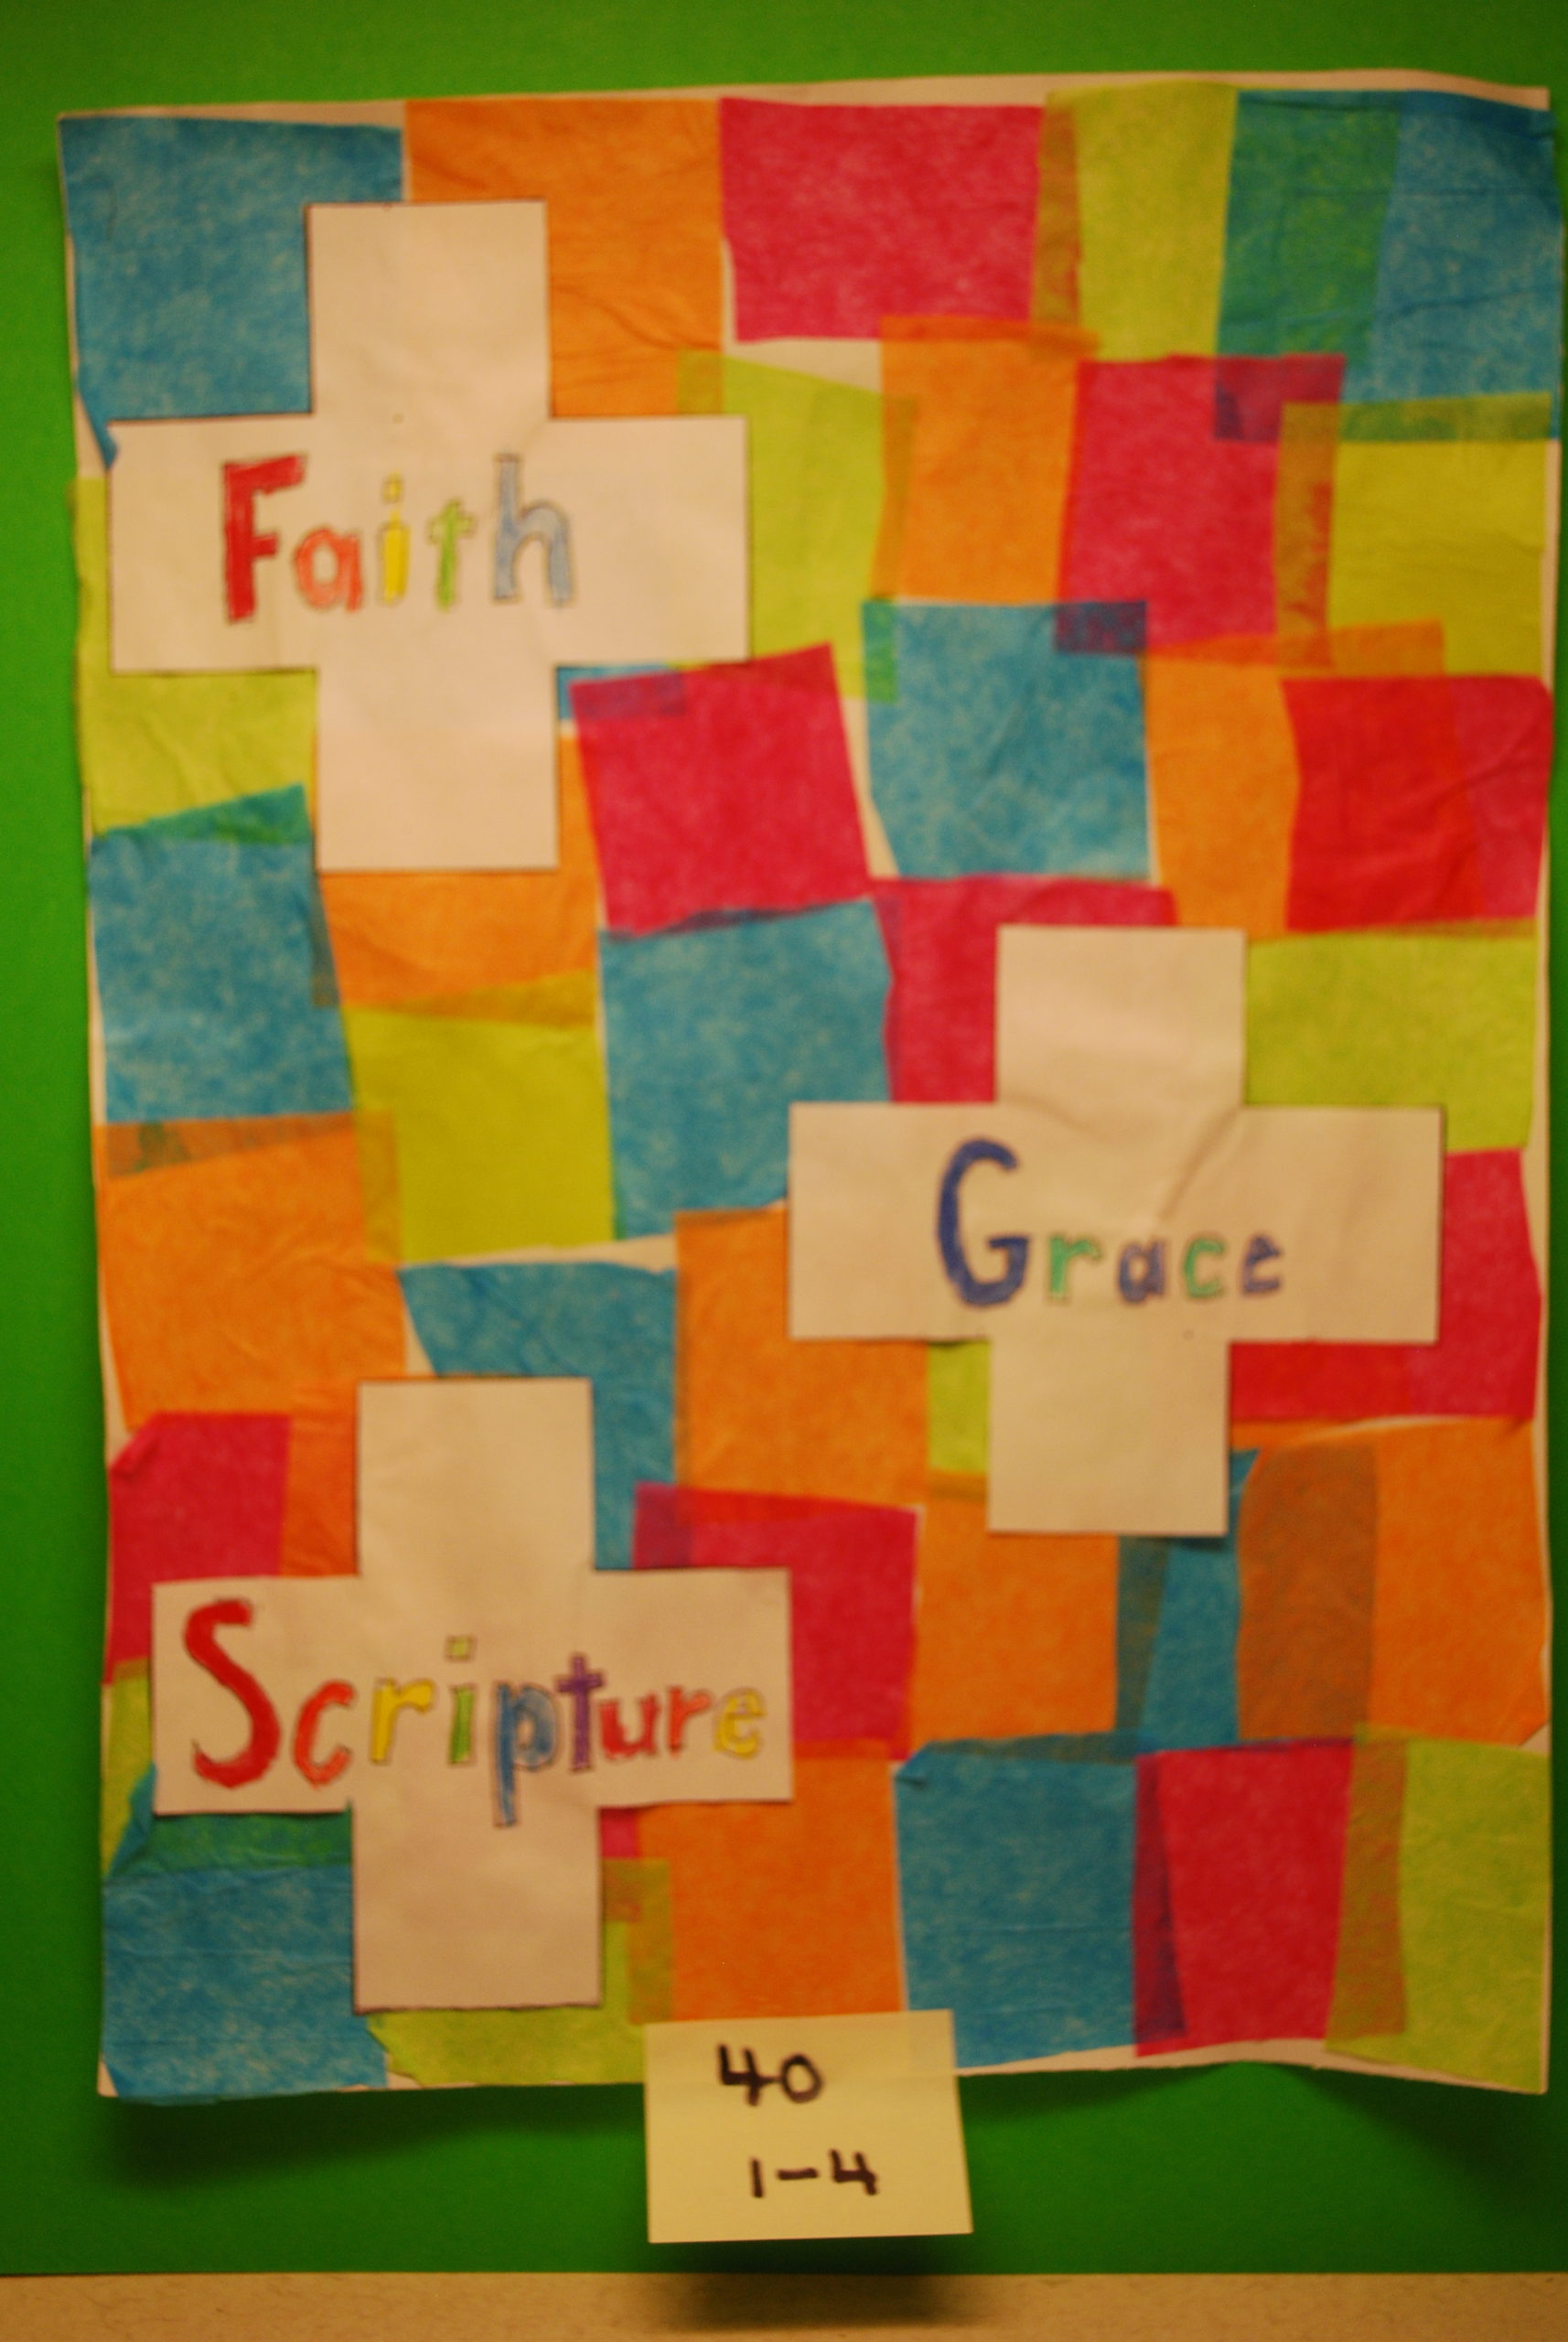 YAC 2020 #40 1-4 Faith Grace Scripture b